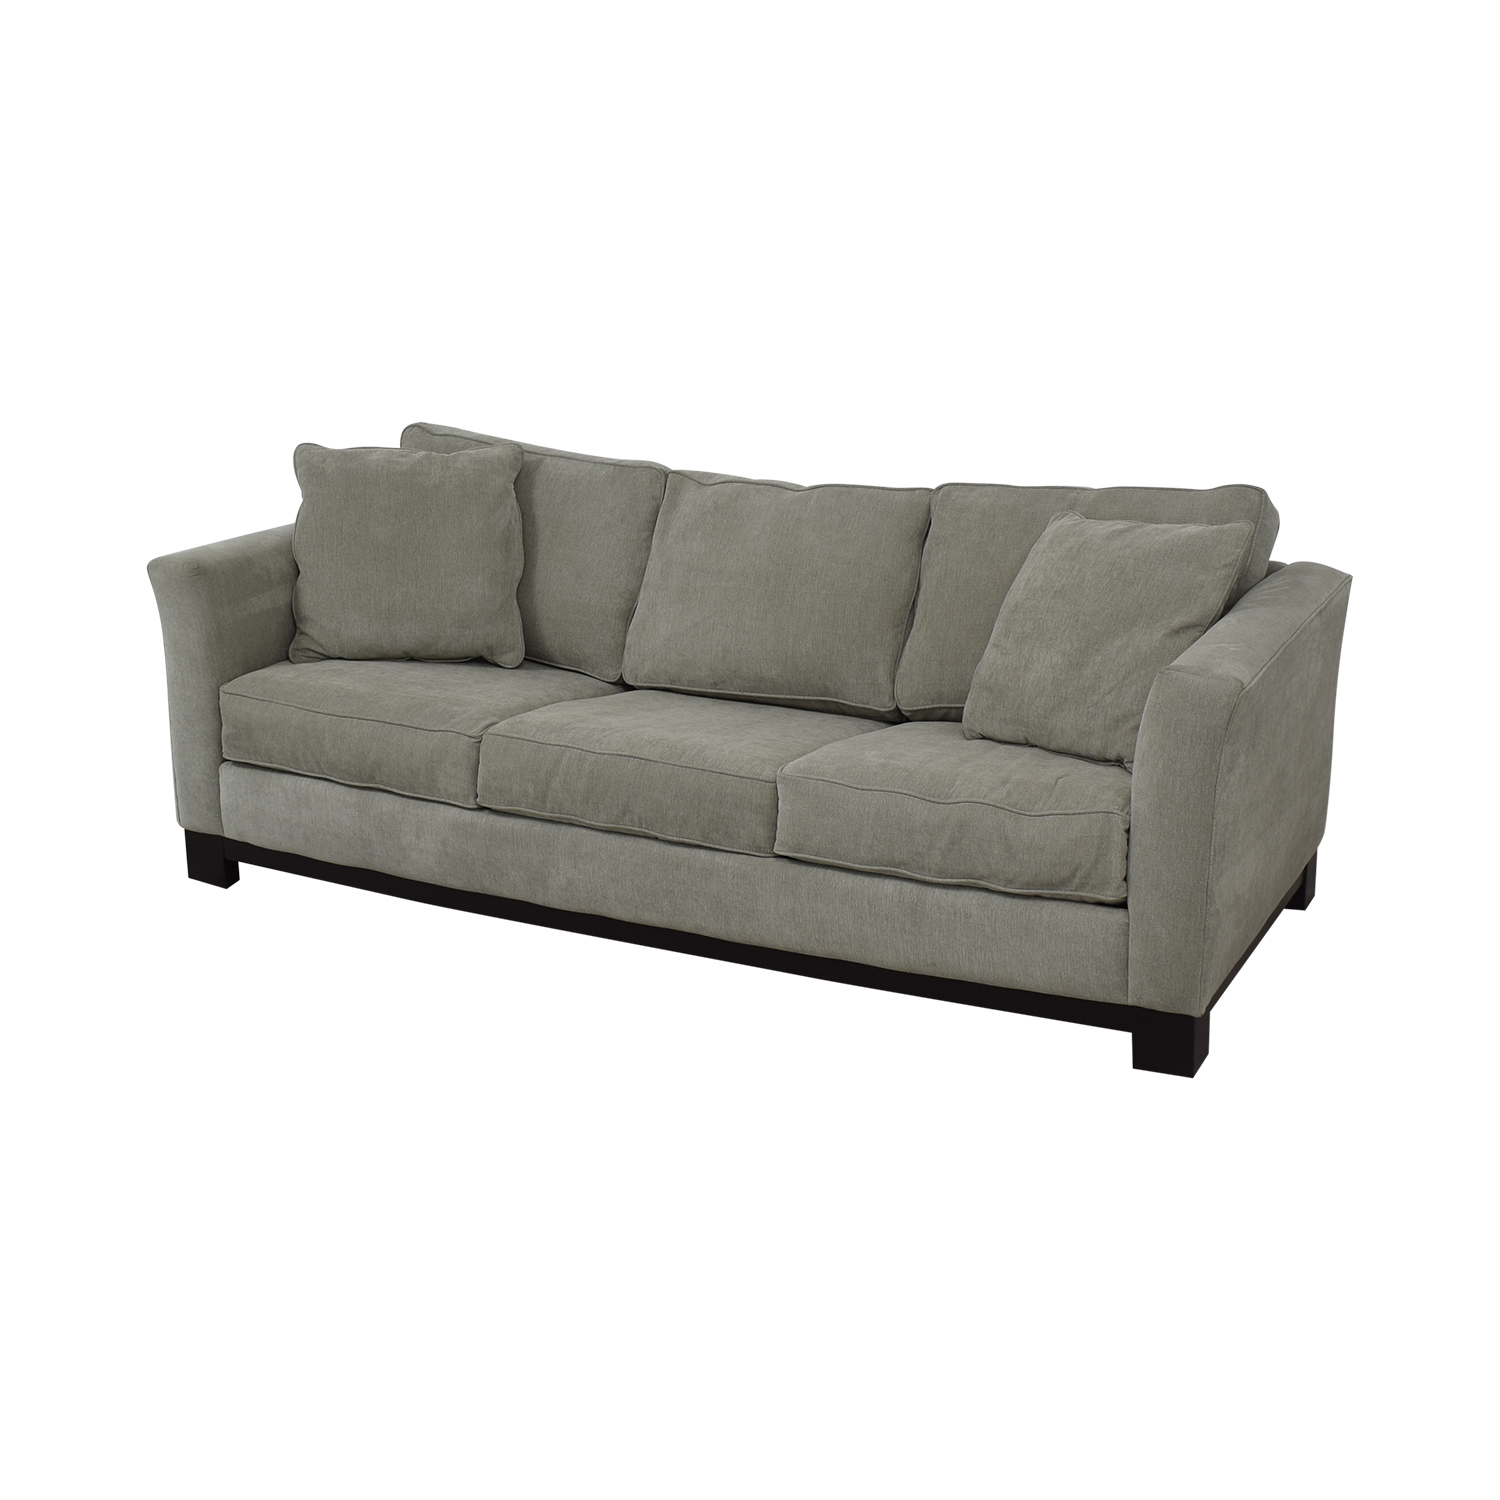 Macy's Macy's Queen Sleeper Sofa Sofa Beds